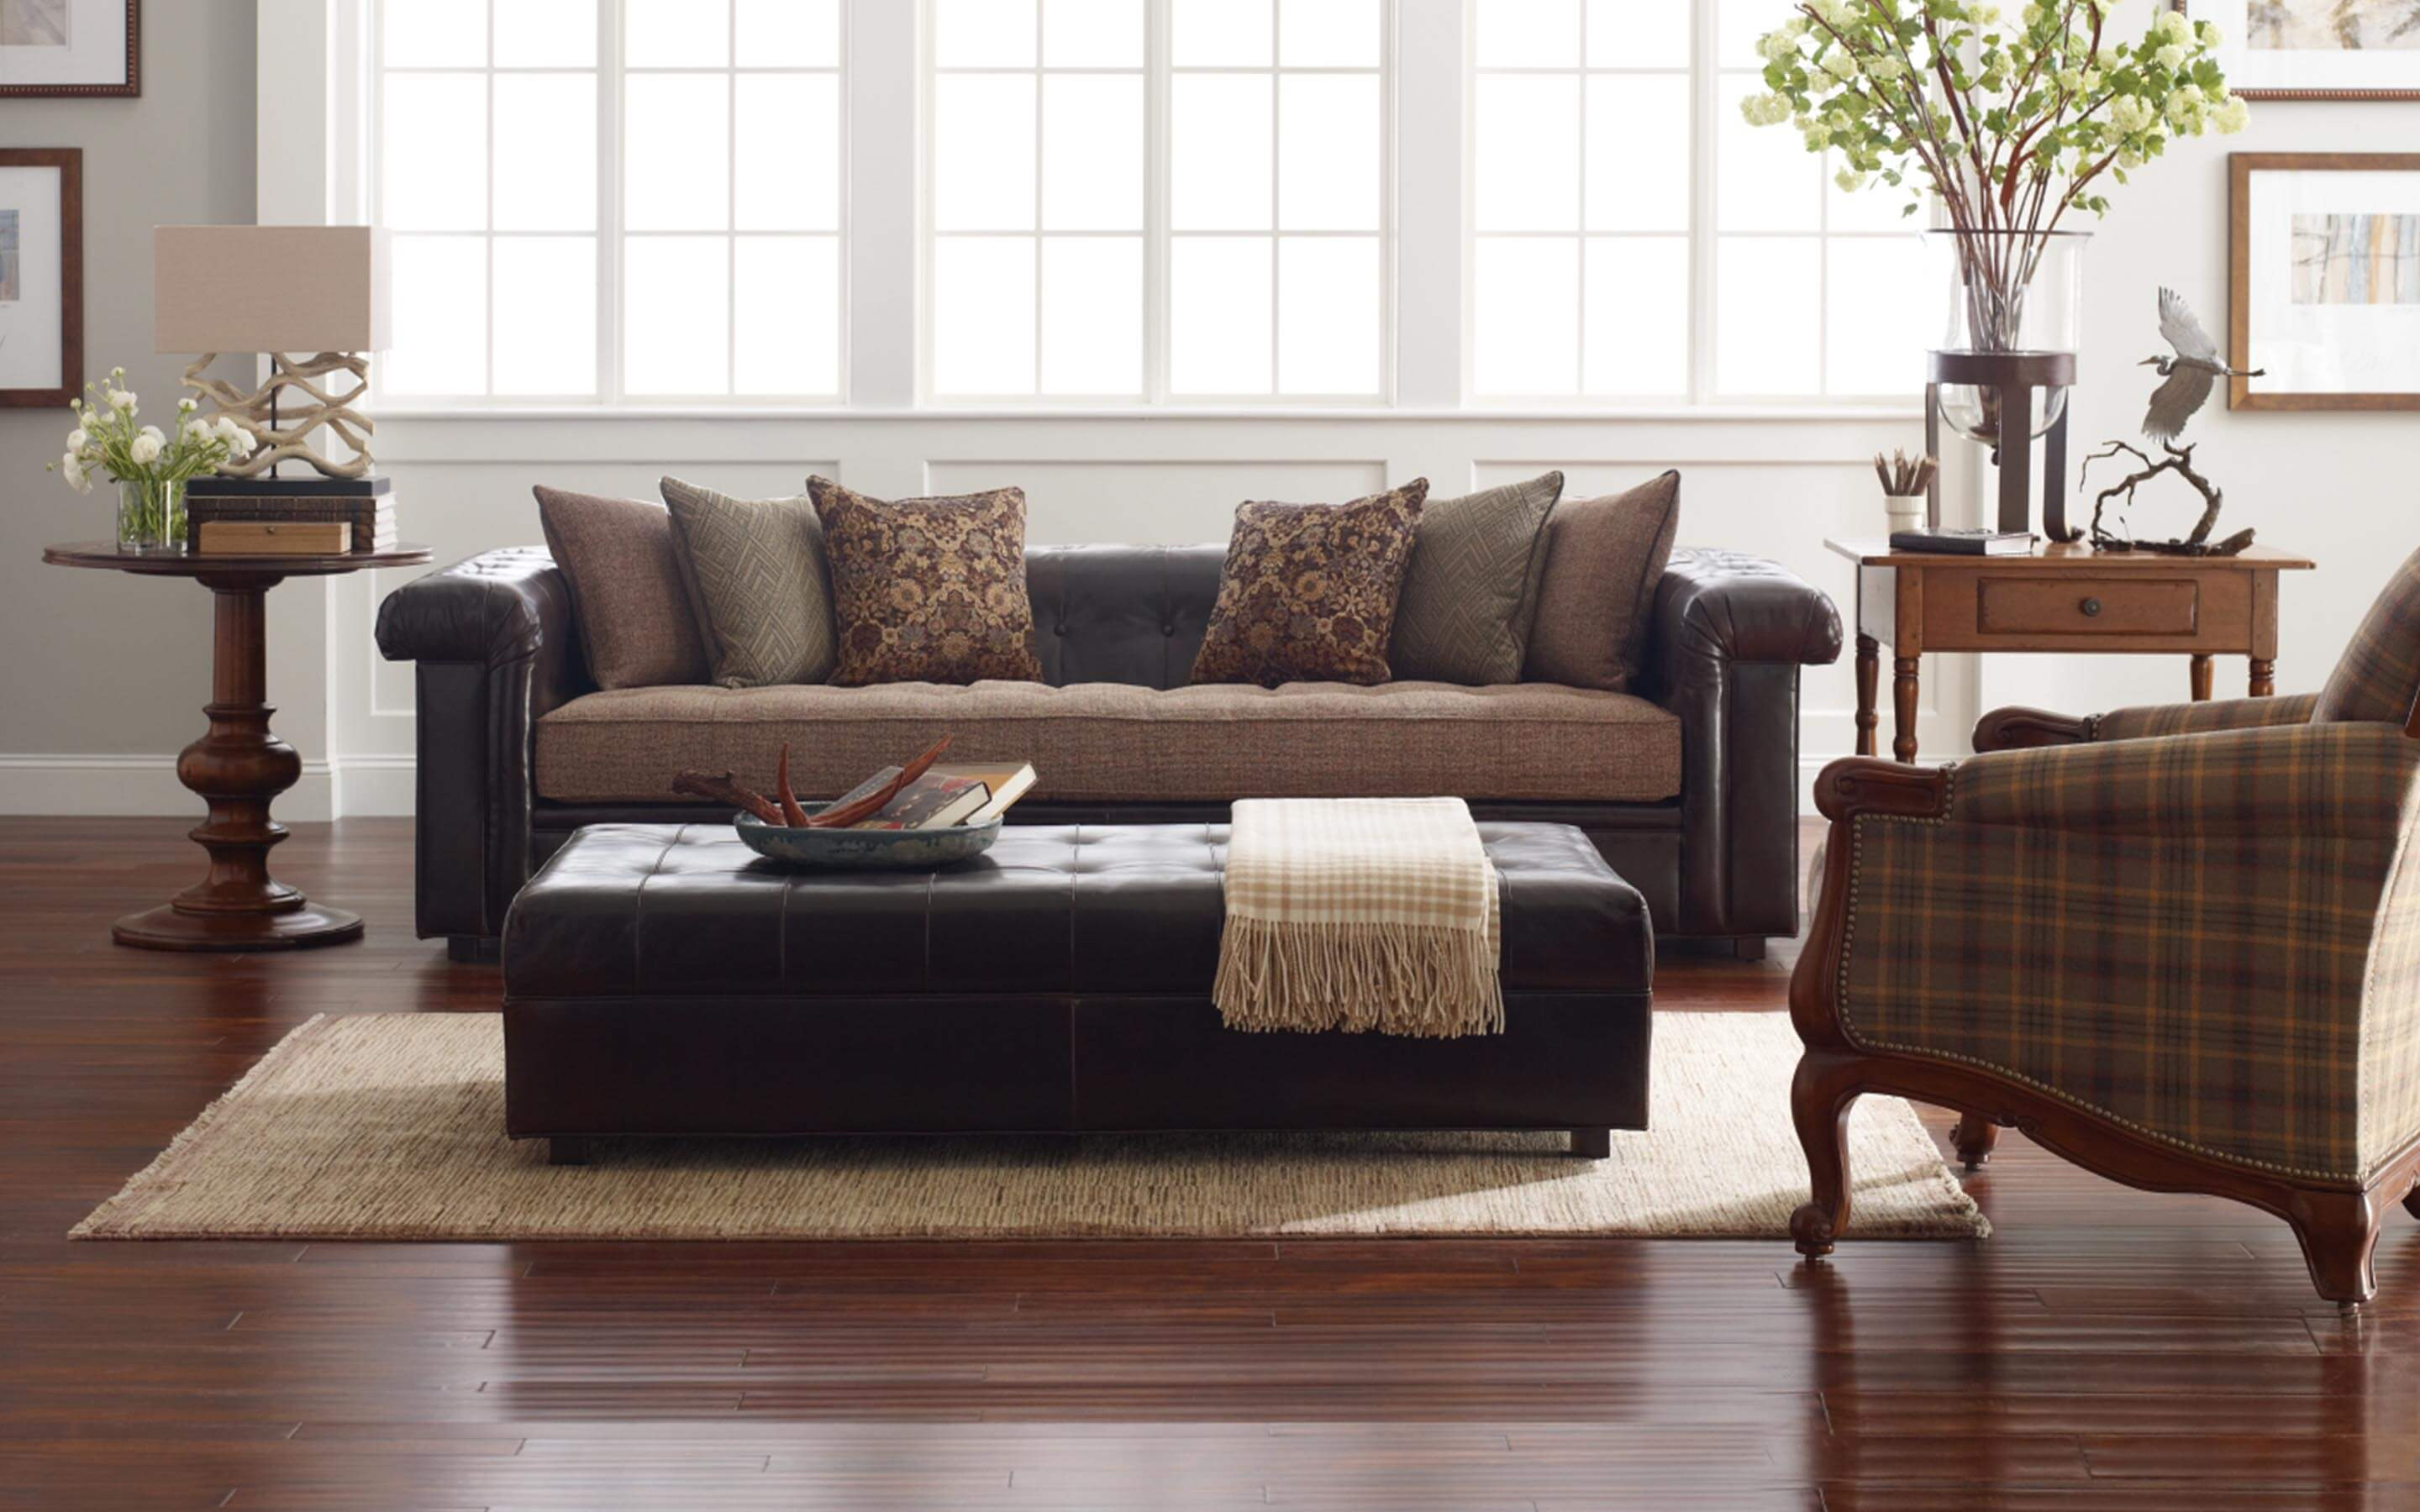 Image of living room set from Reid's furnishing in Roanoke.